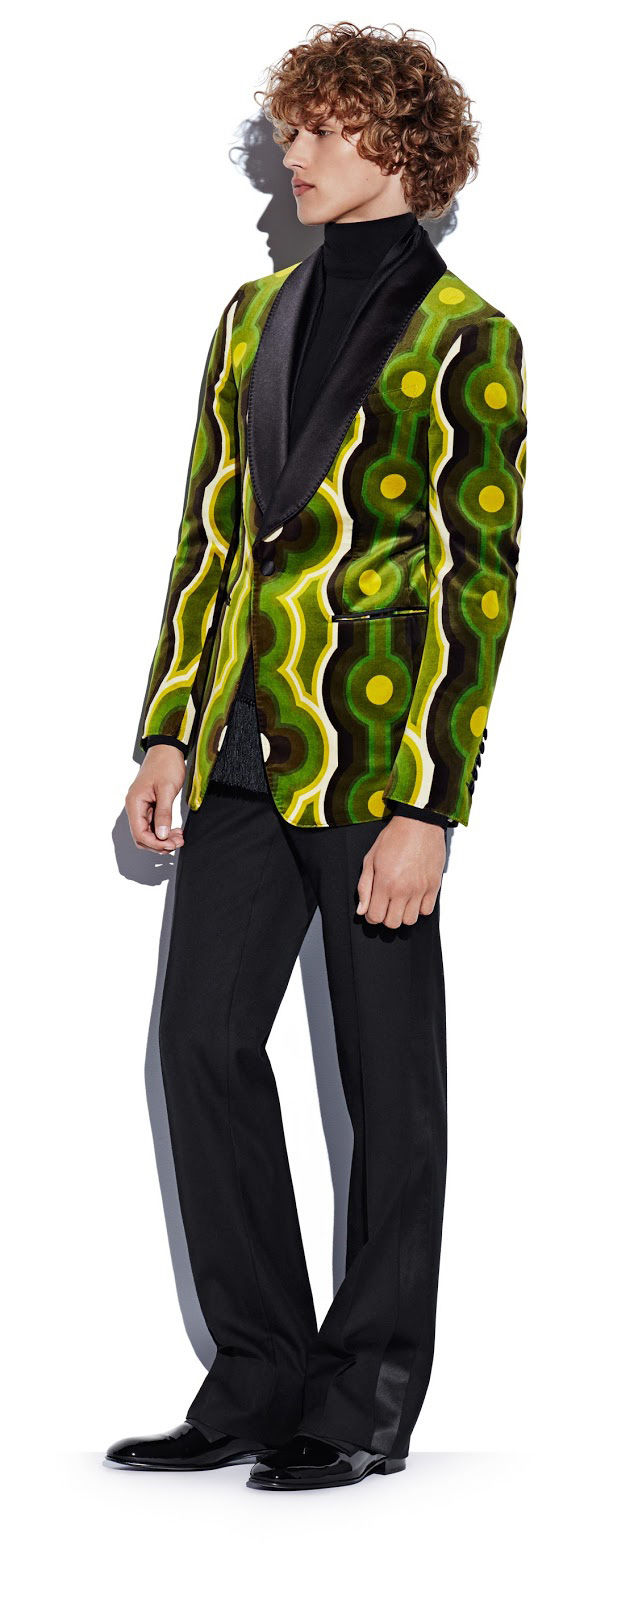 Disco-Inspired Menswear